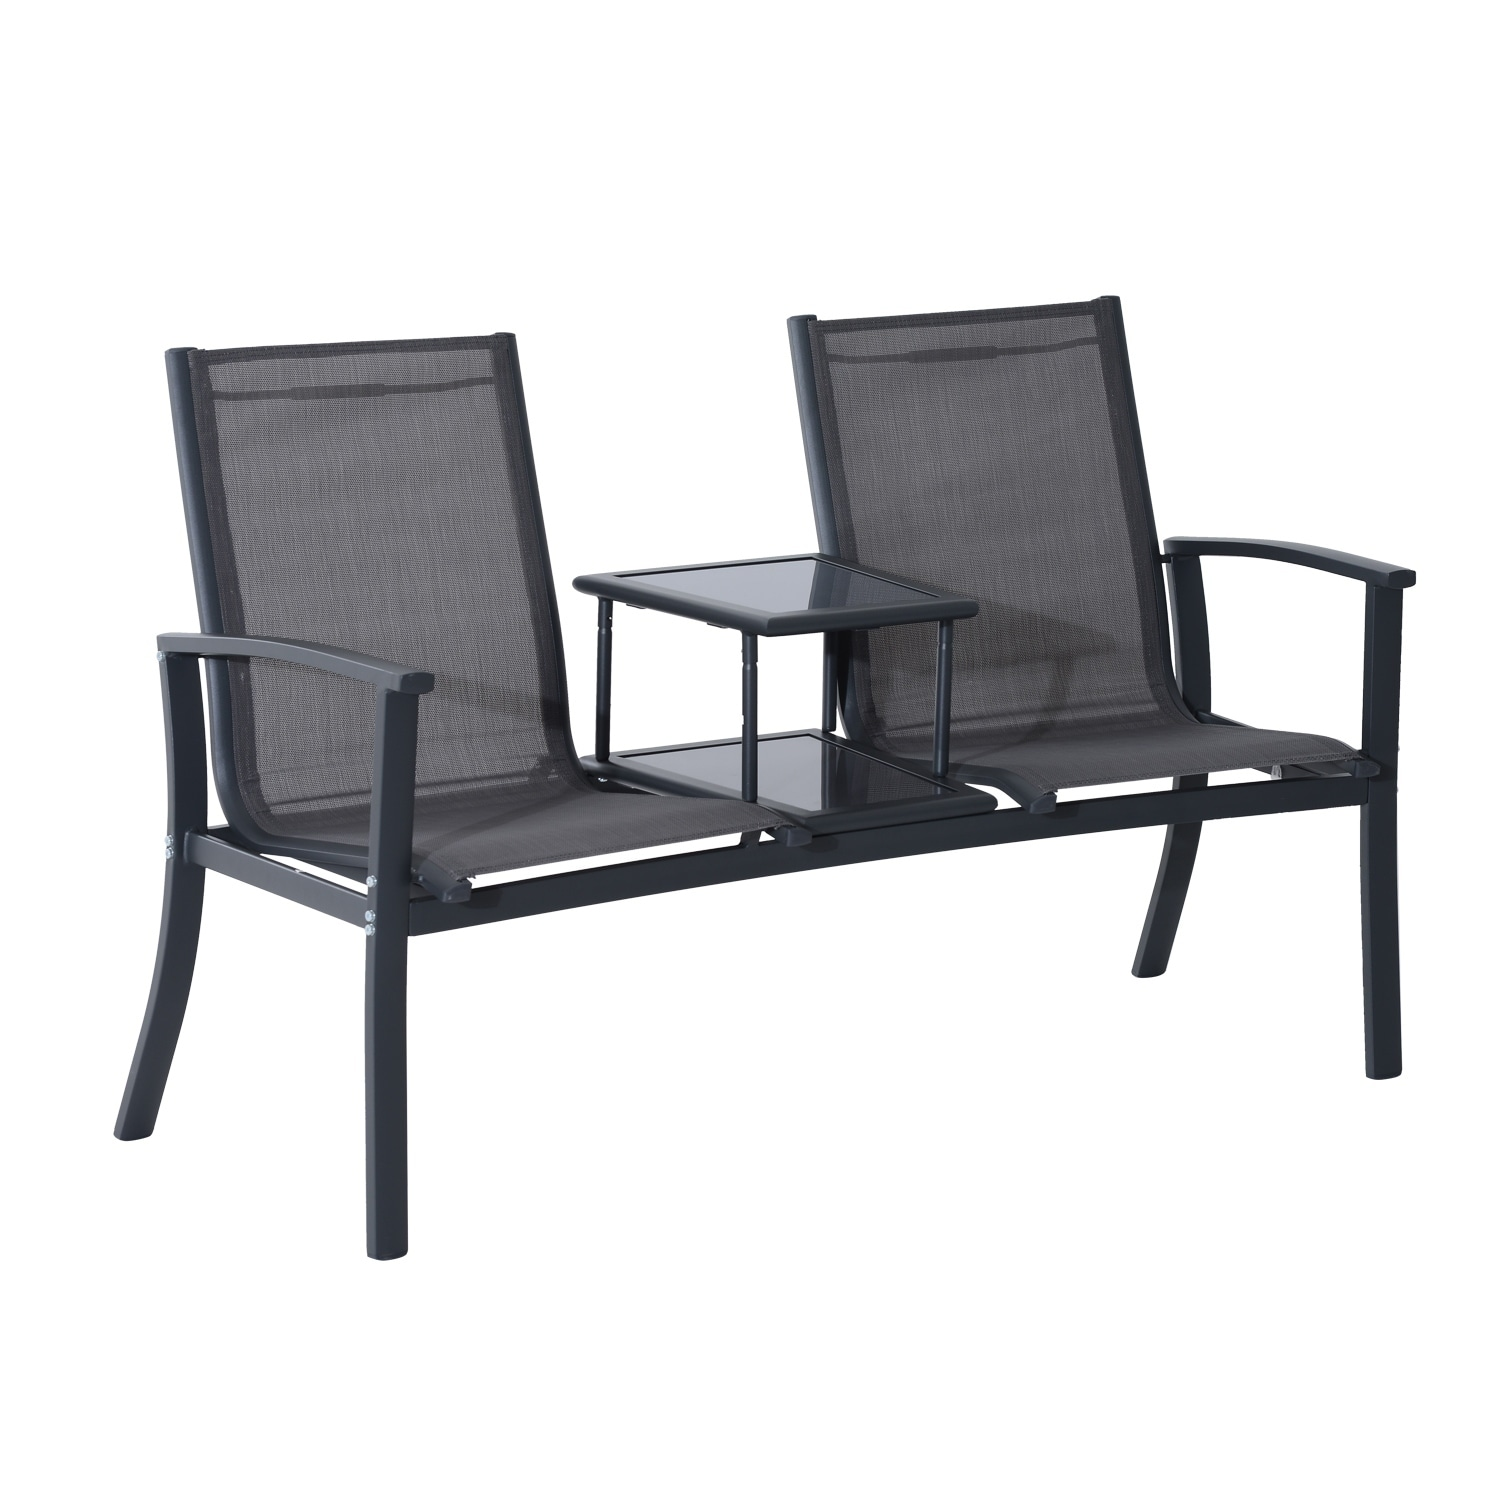 outsunny chair set outdoor lounge dining wicker couch and table black chairs sectional garden patio rattan sofa living furniture